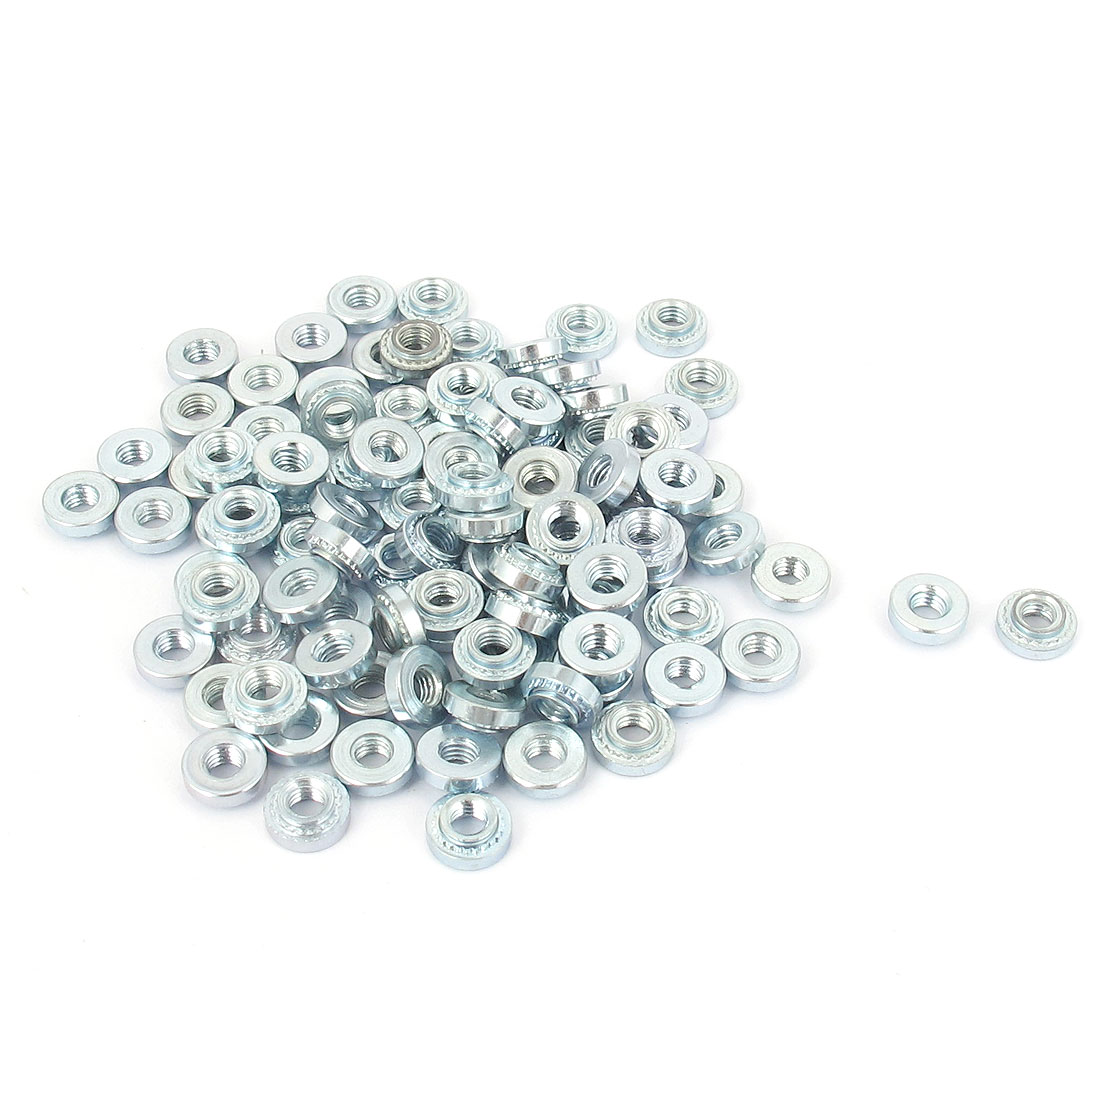 M3 Zinc Plated Self Clinching Rivet Nut Fastener 100pcs for 1mm Thin Plates